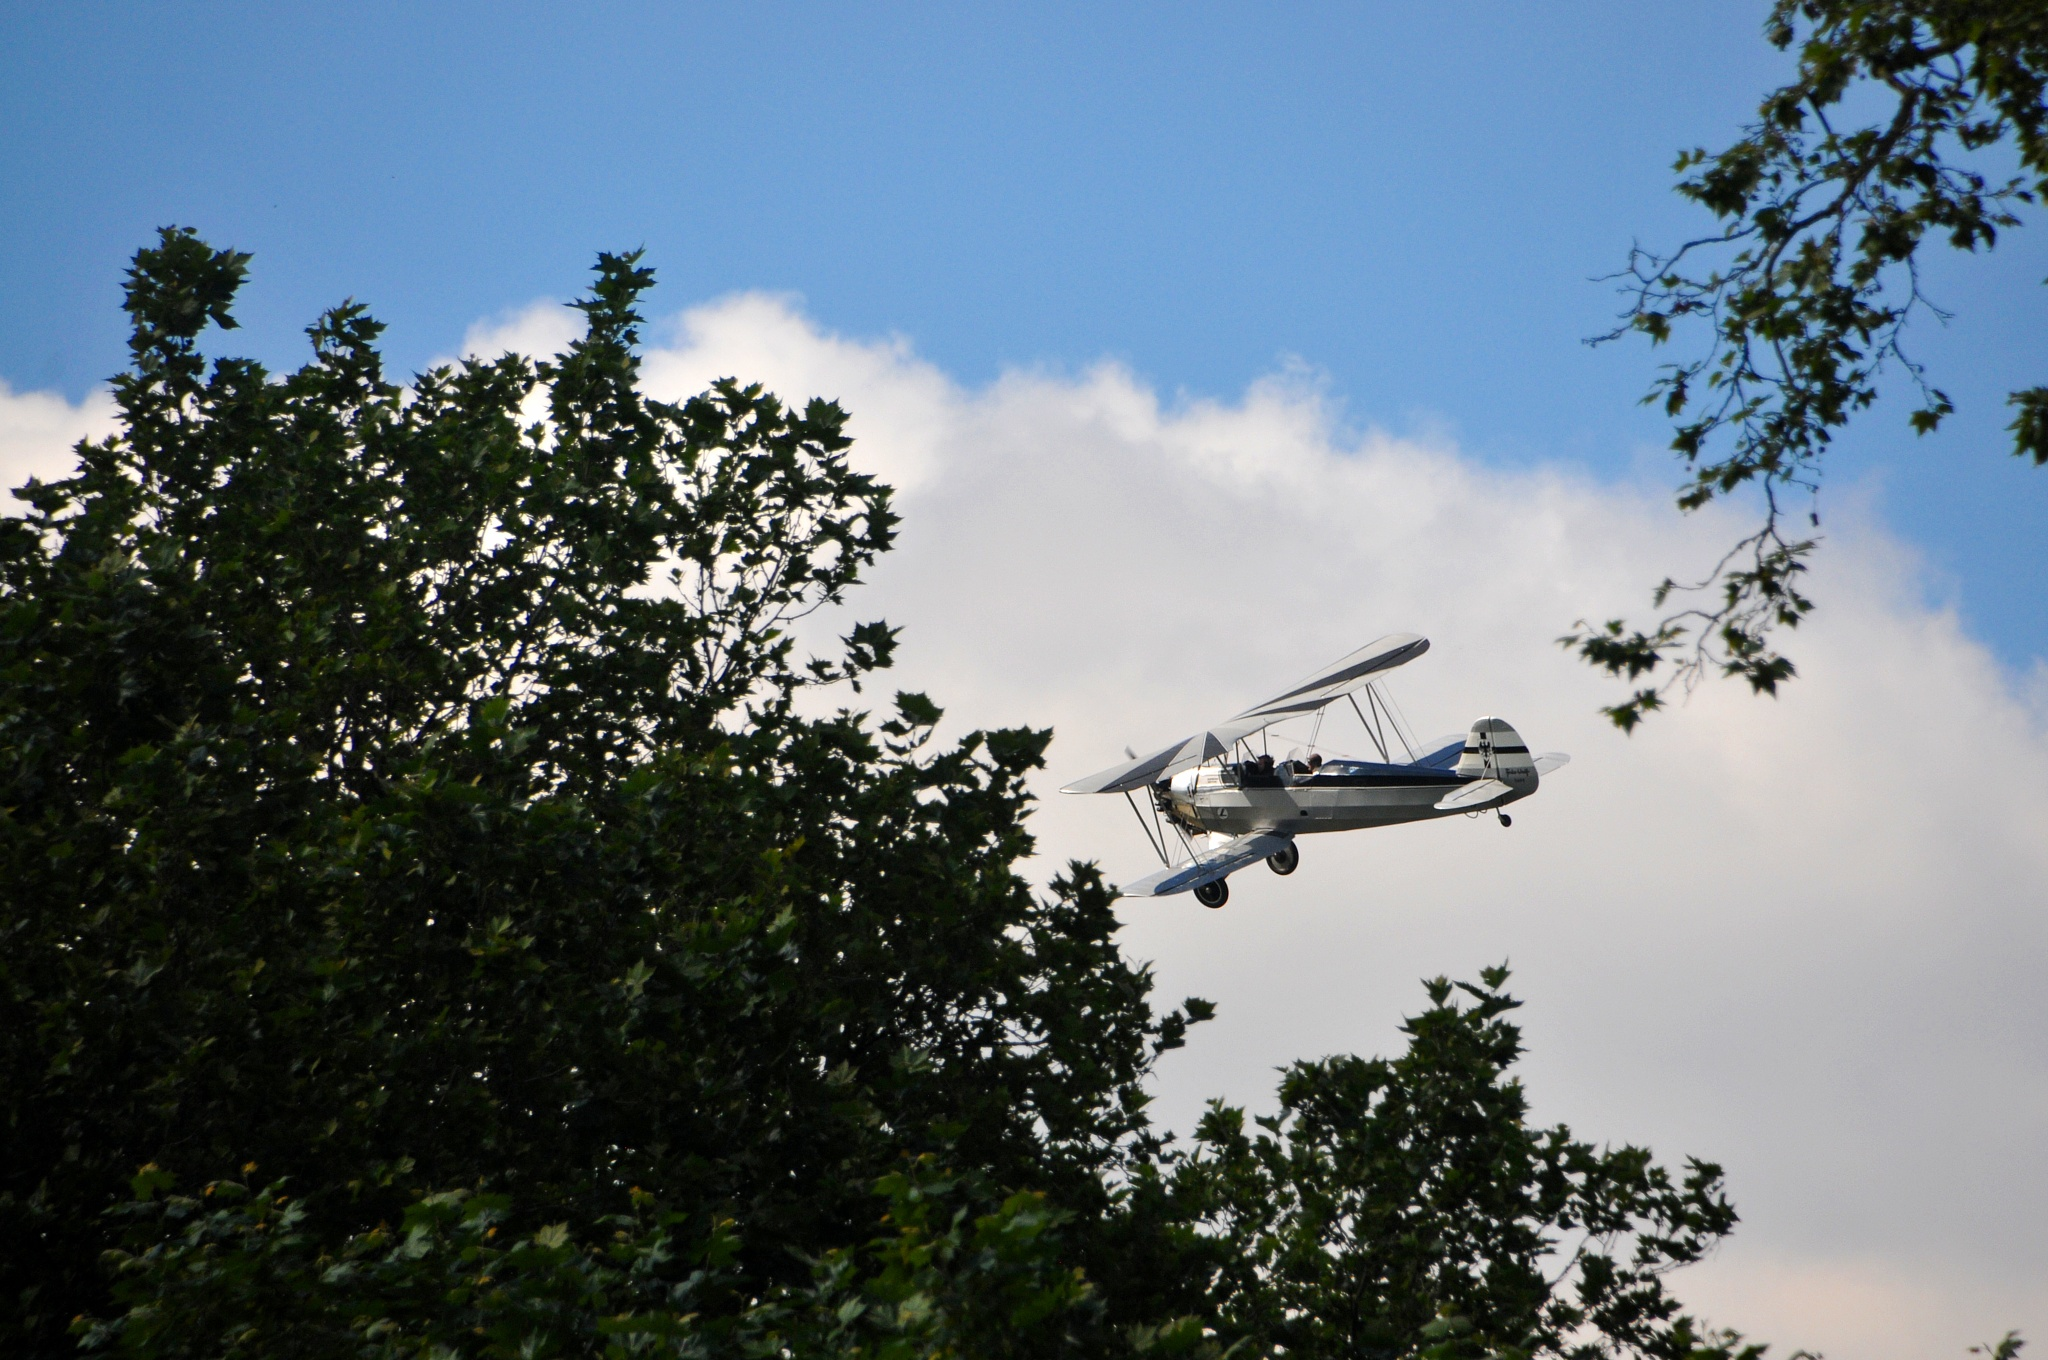 The biplane between the trees by JeanGregoireMarin